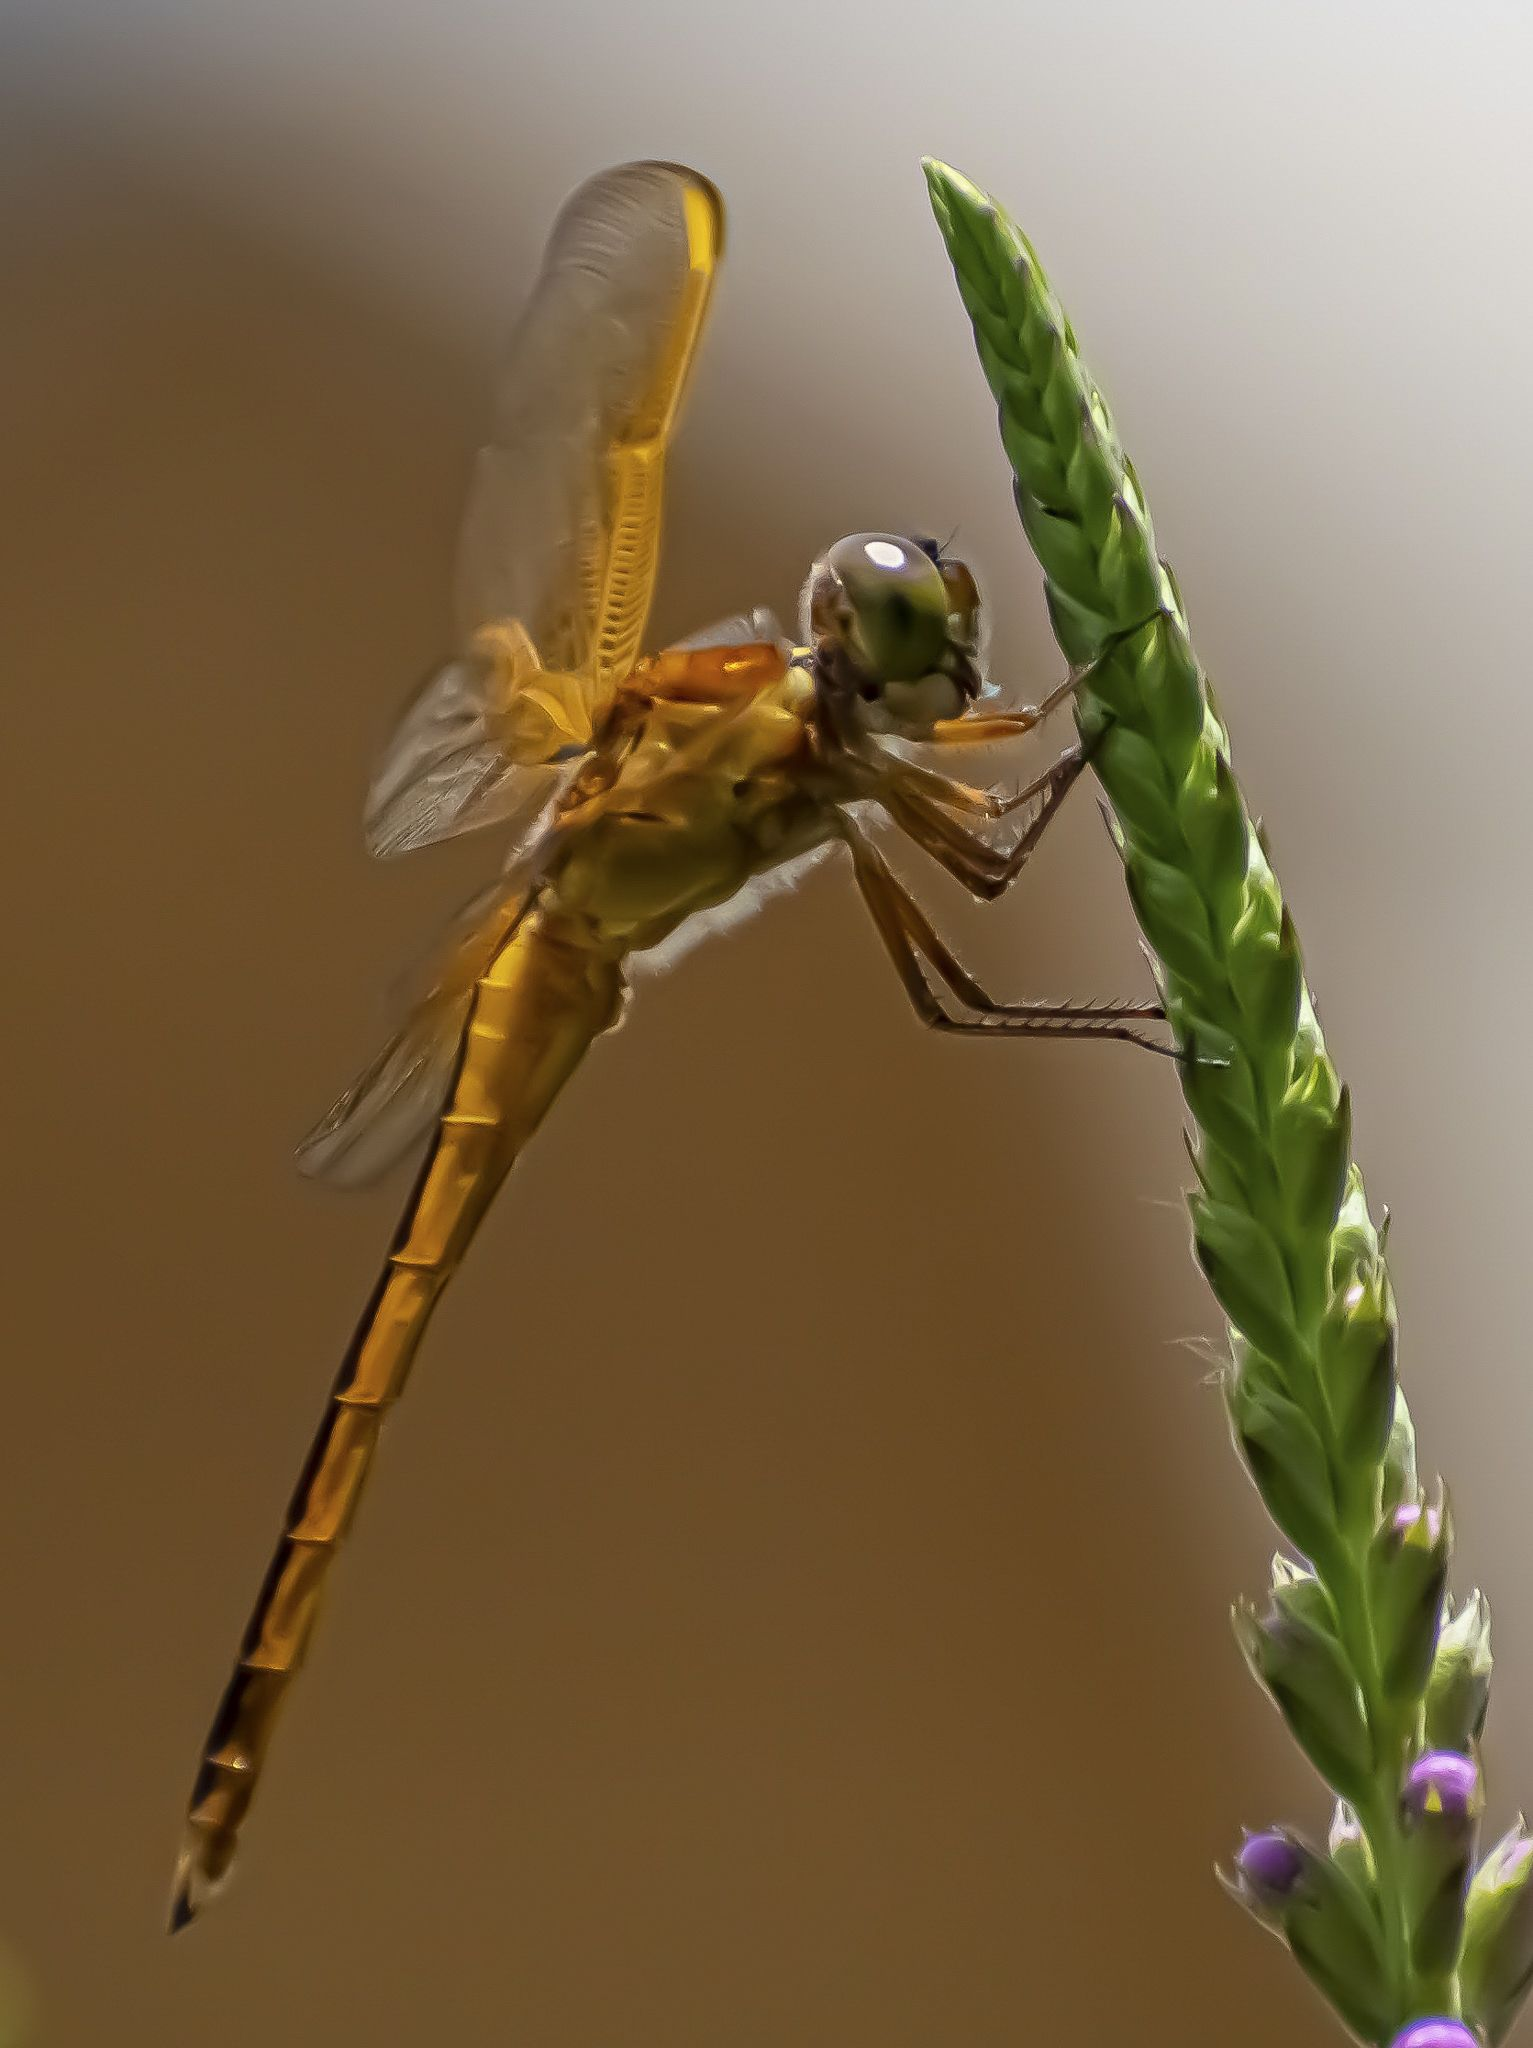 A tan needham skimmer clings to a flower.